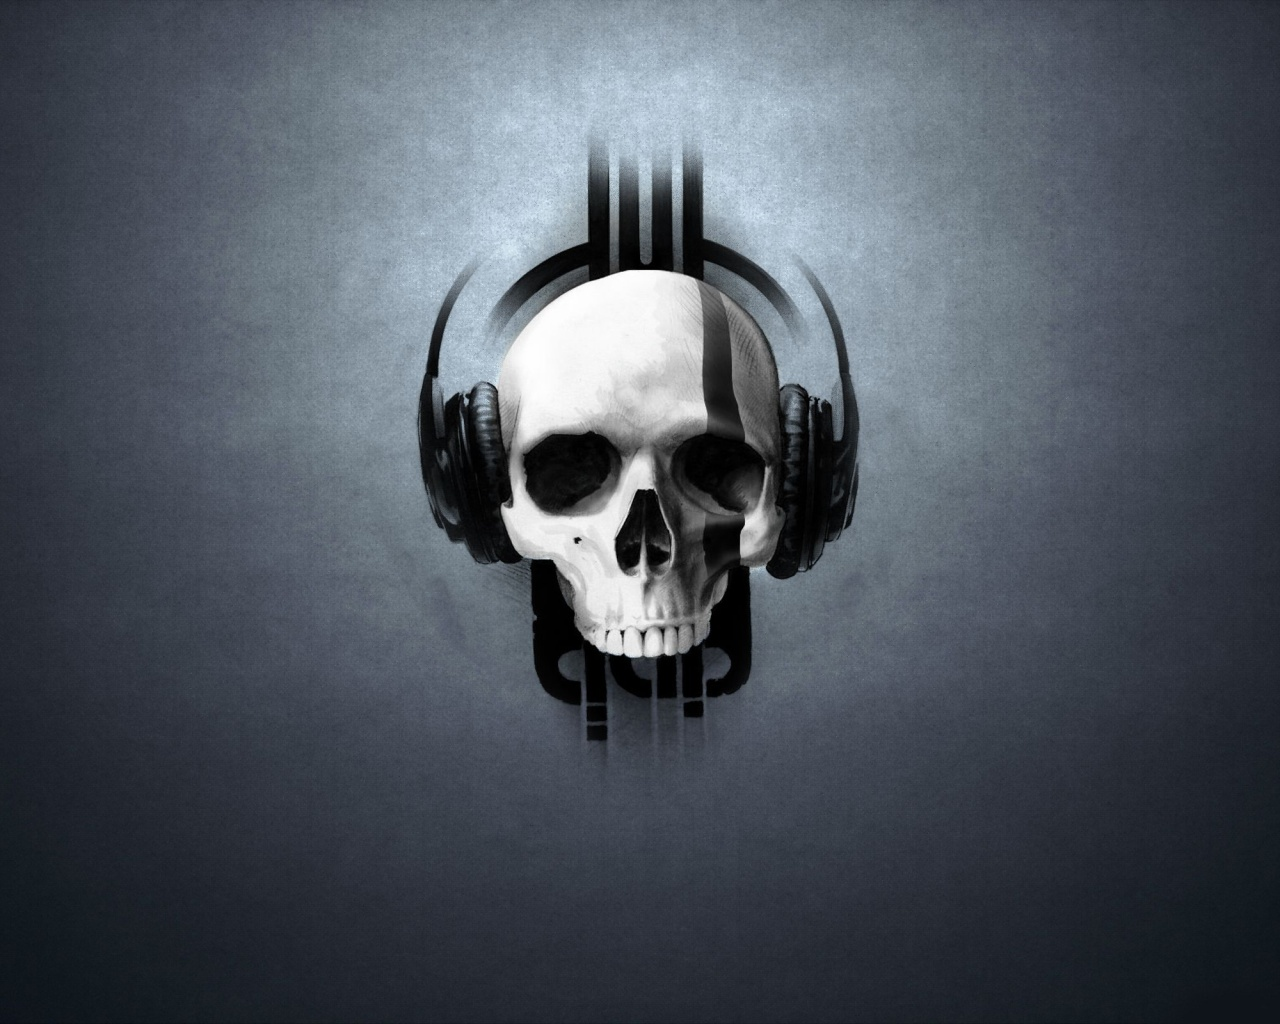 Description: The Wallpaper above is Music skull headphones Wallpaper in Resolution 1280x1024. Choose your Resolution and Download Music skull headphones ...